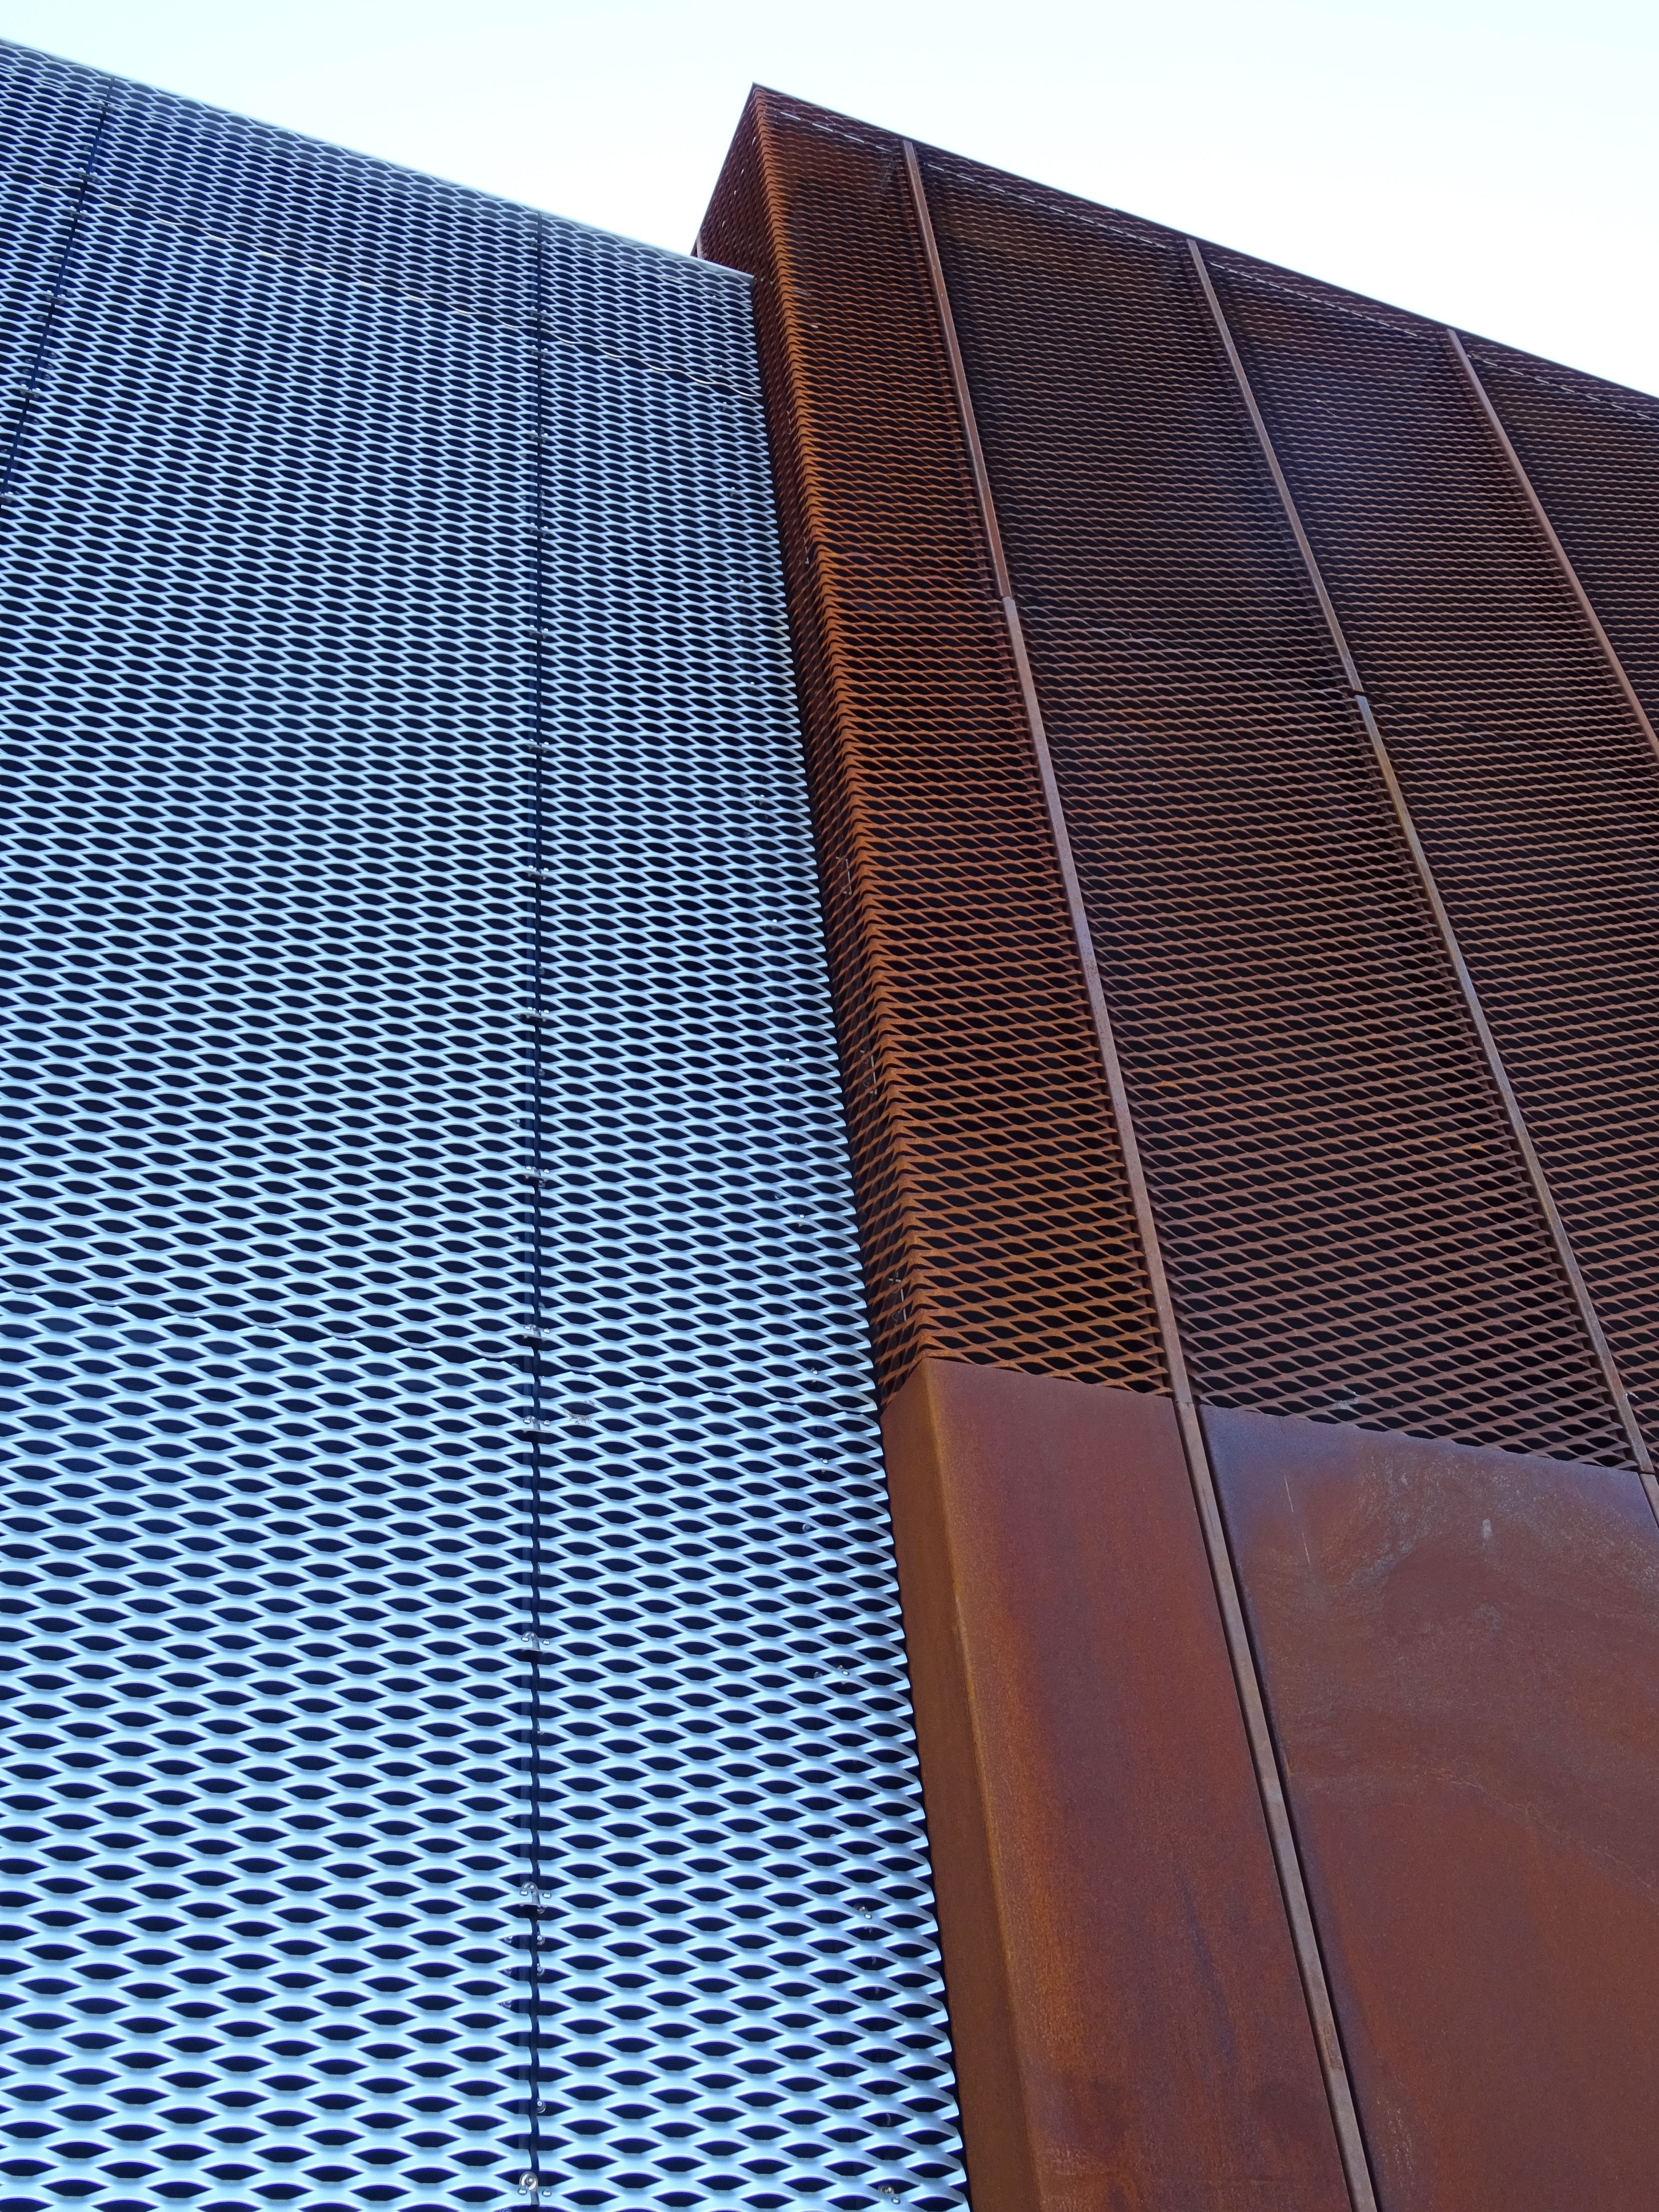 Corten And Mesh By James And Taylor Metal Facade Facade Architecture Facade Design